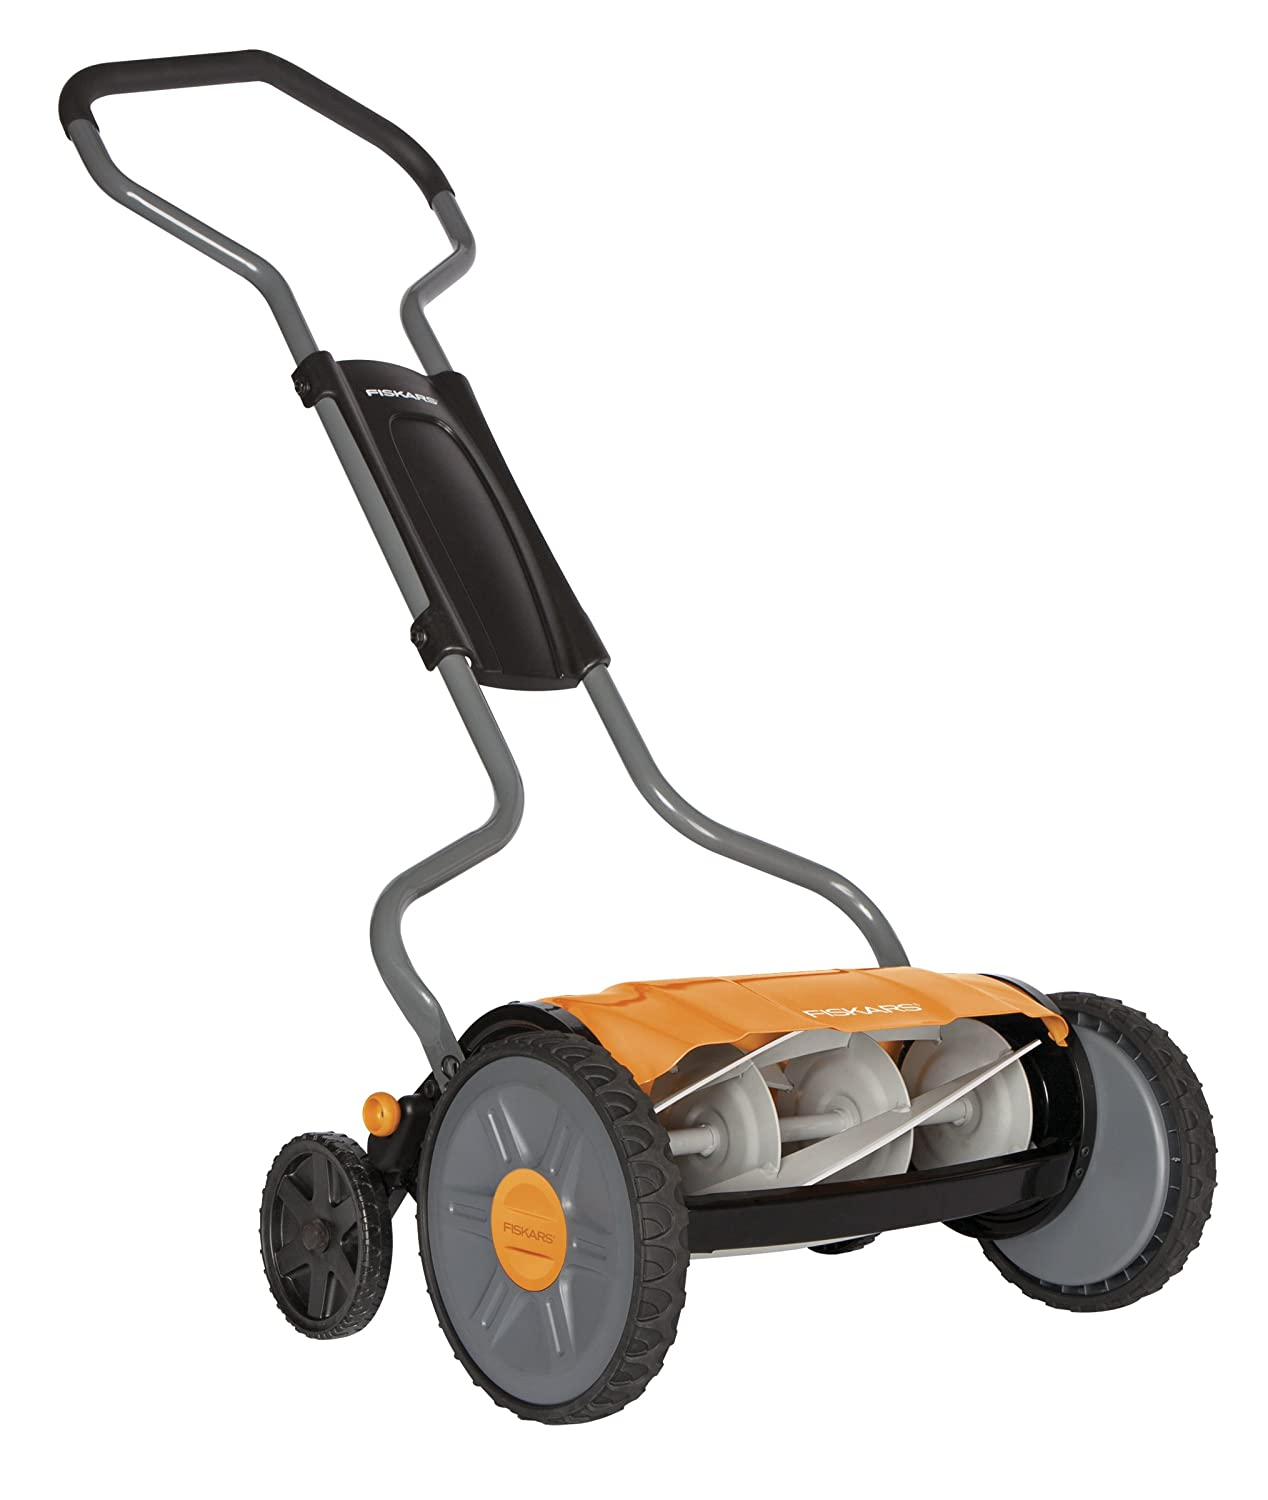 Fiskars 17 Inch StaySharp Plus Reel Mower (6207)